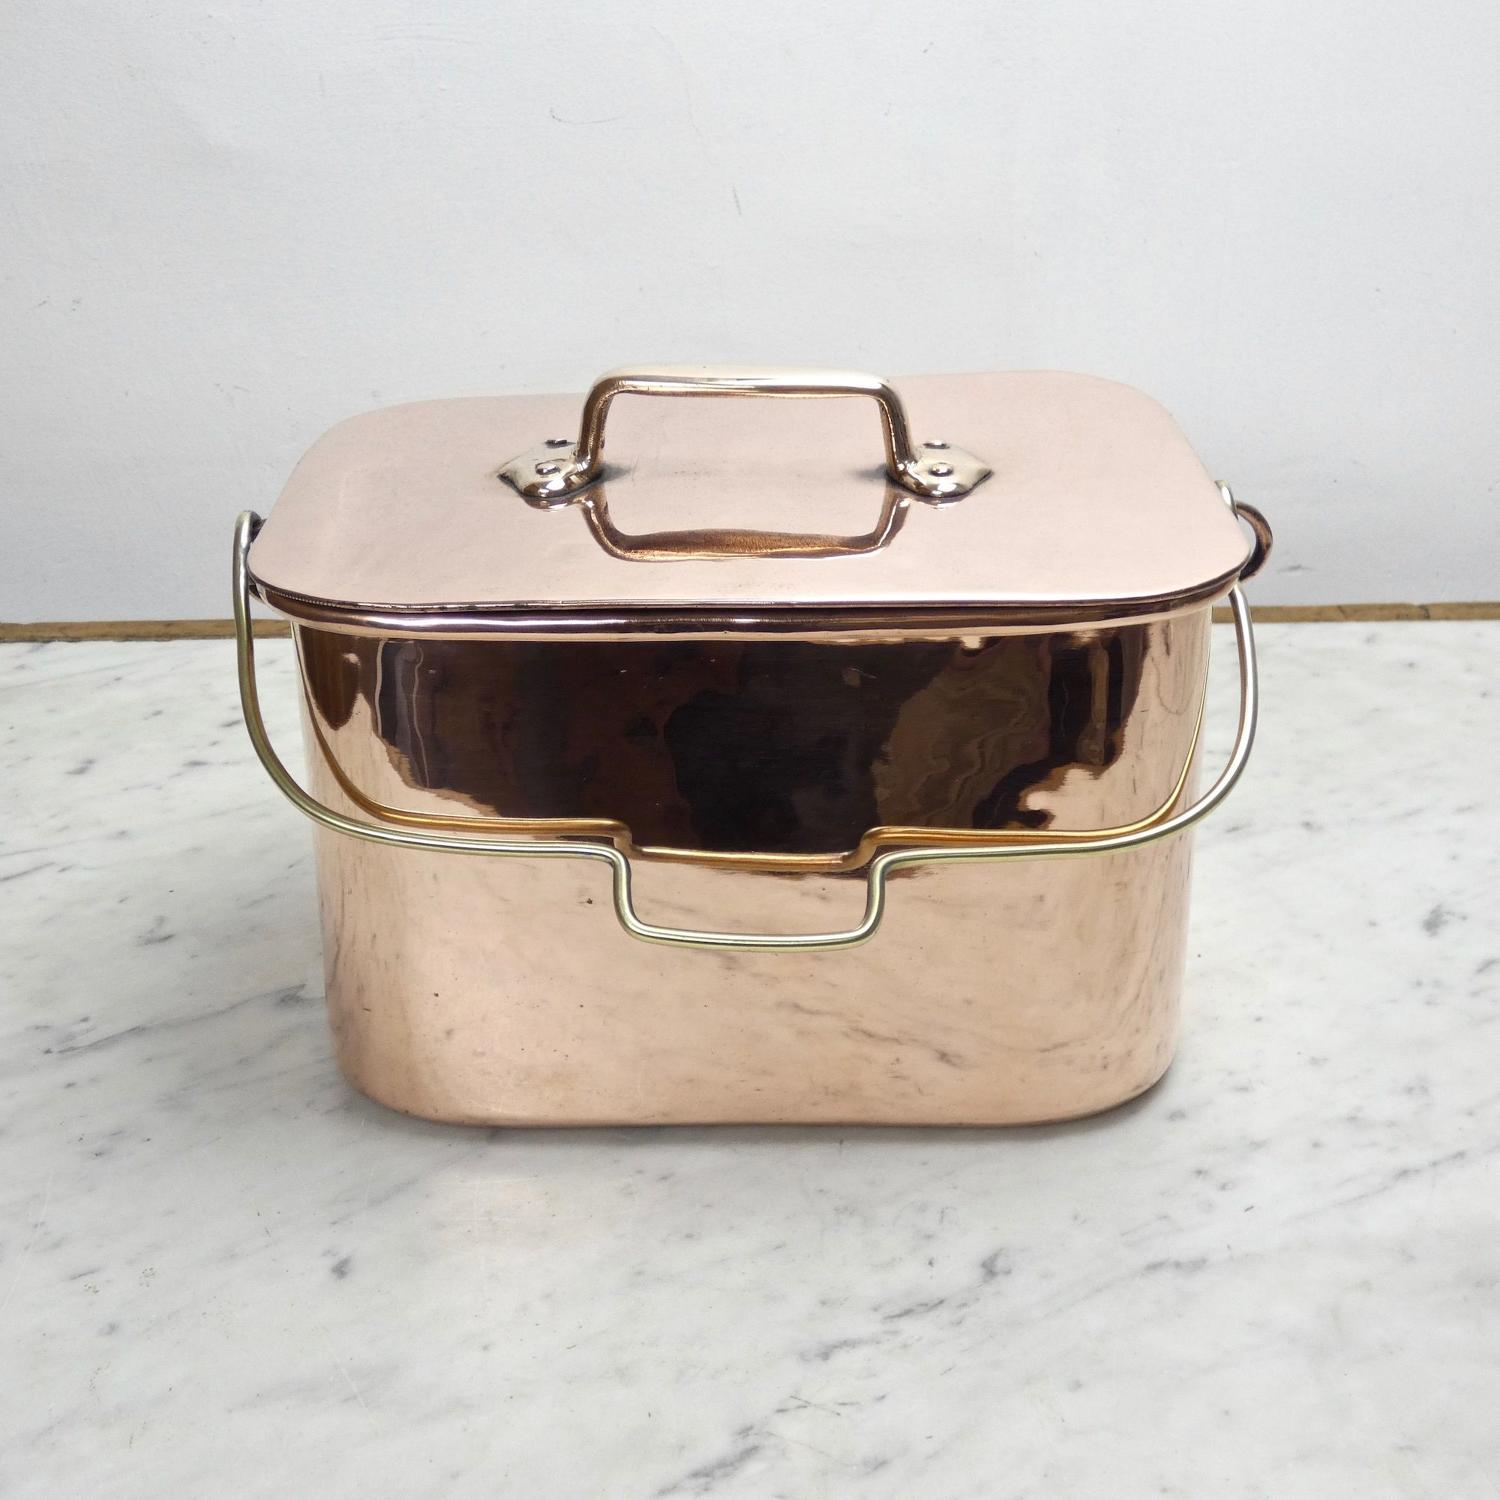 French copper casserole